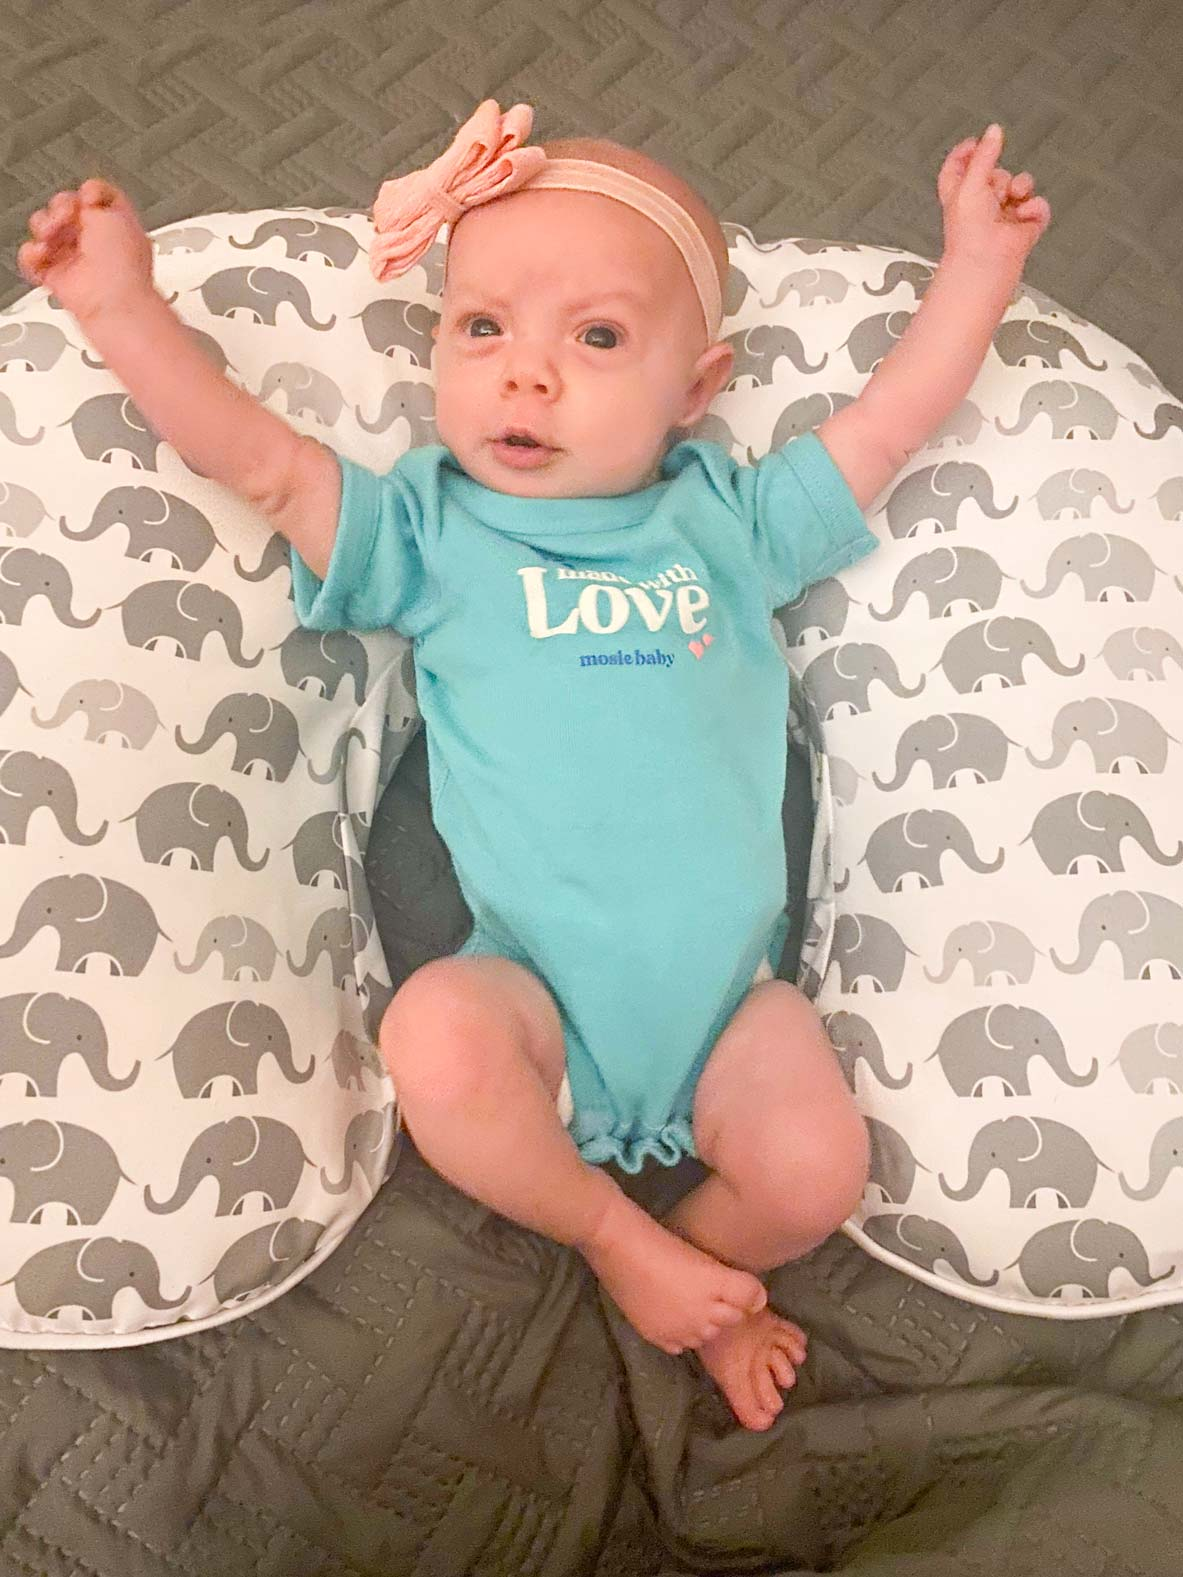 Baby girl in Mosie Baby onesie laying on elephant patterned pillow with her arms outstretched